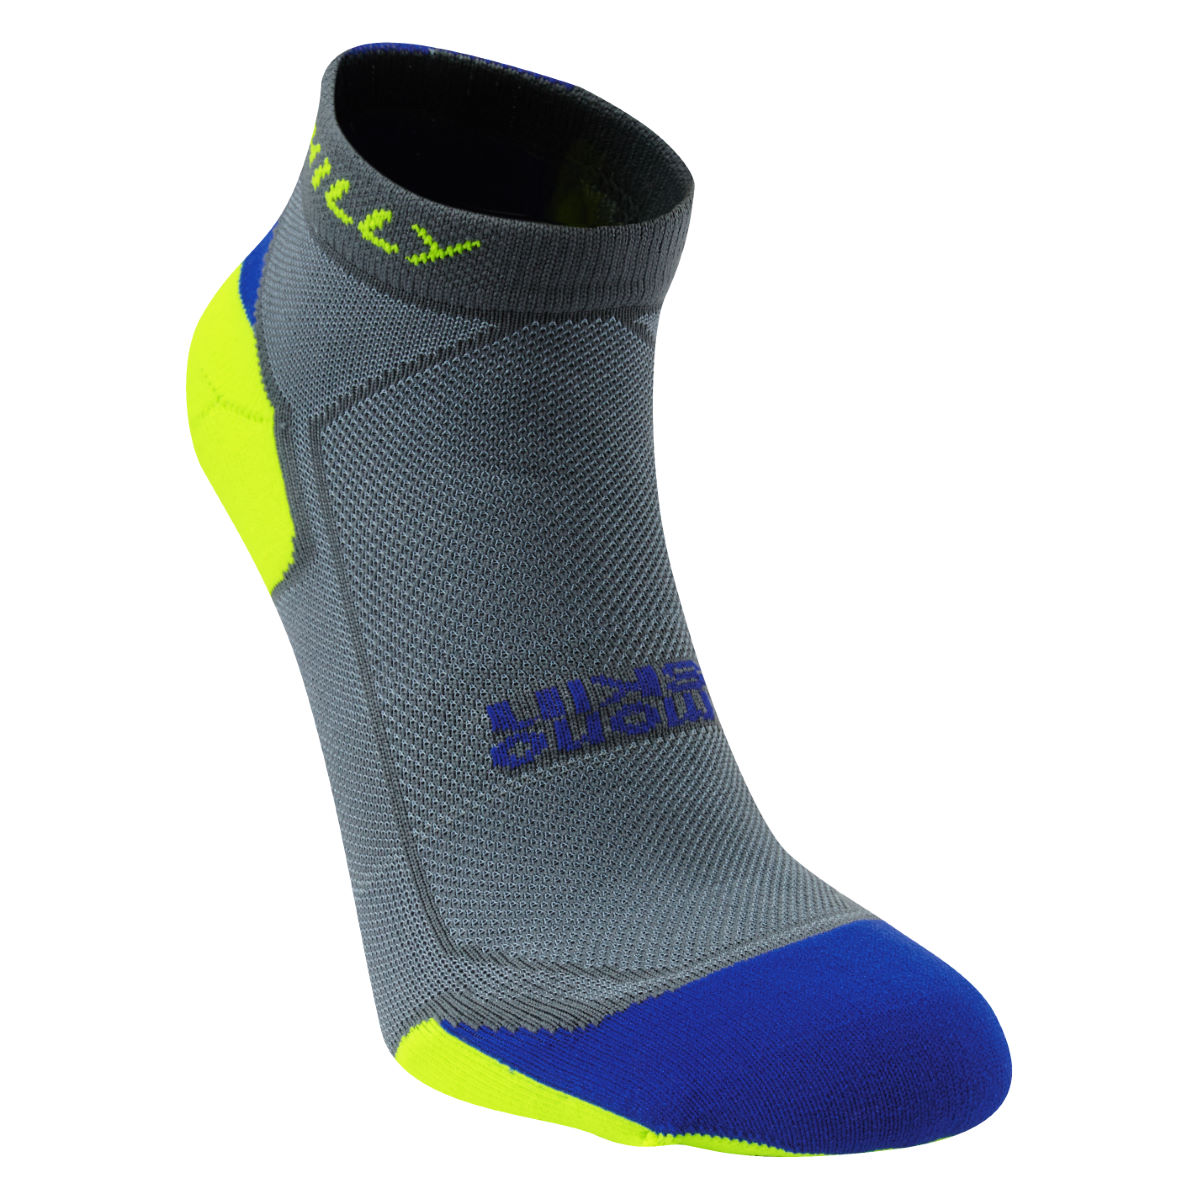 Chaussettes Hilly Lite-Cushion (basses) - S Grey/Cobalt/Yellow Chaussettes de running